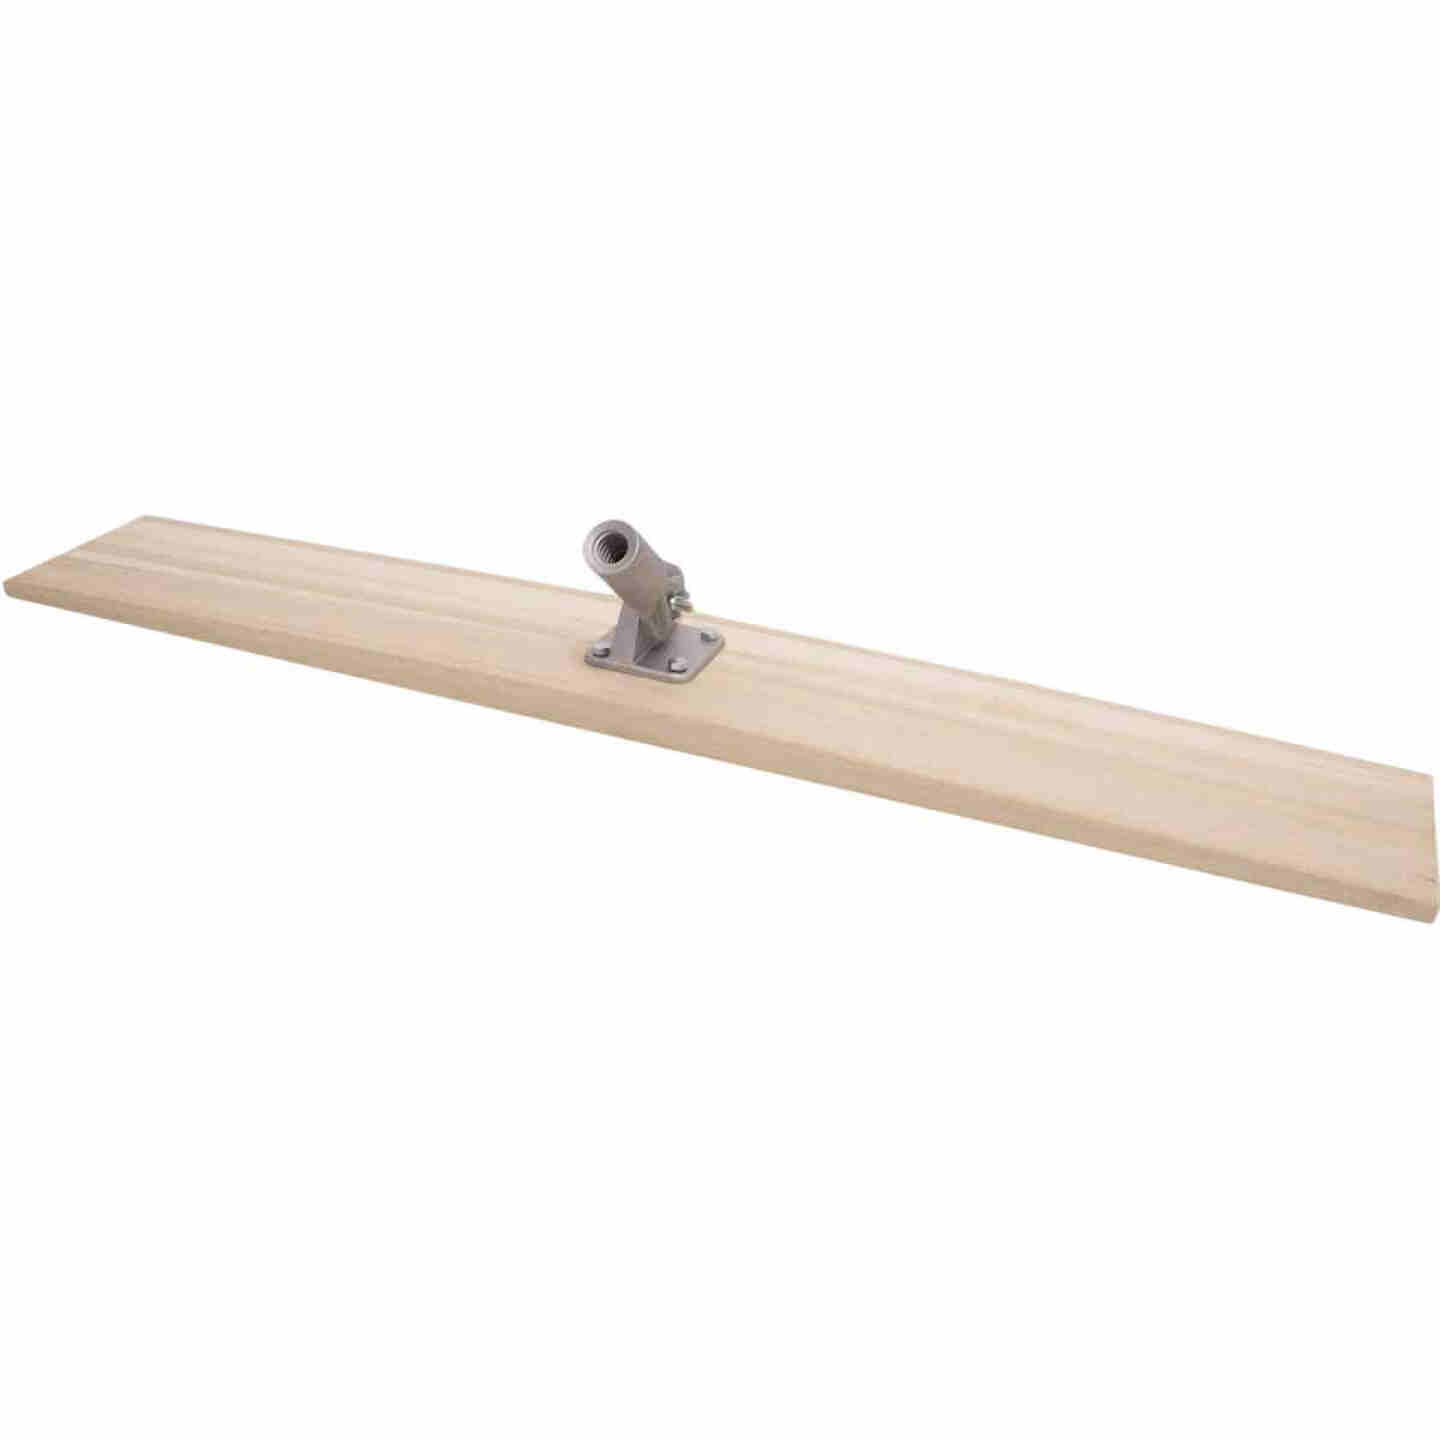 Marshalltown 8 In. x 48 In. Straight End Wood Bull Float Image 2